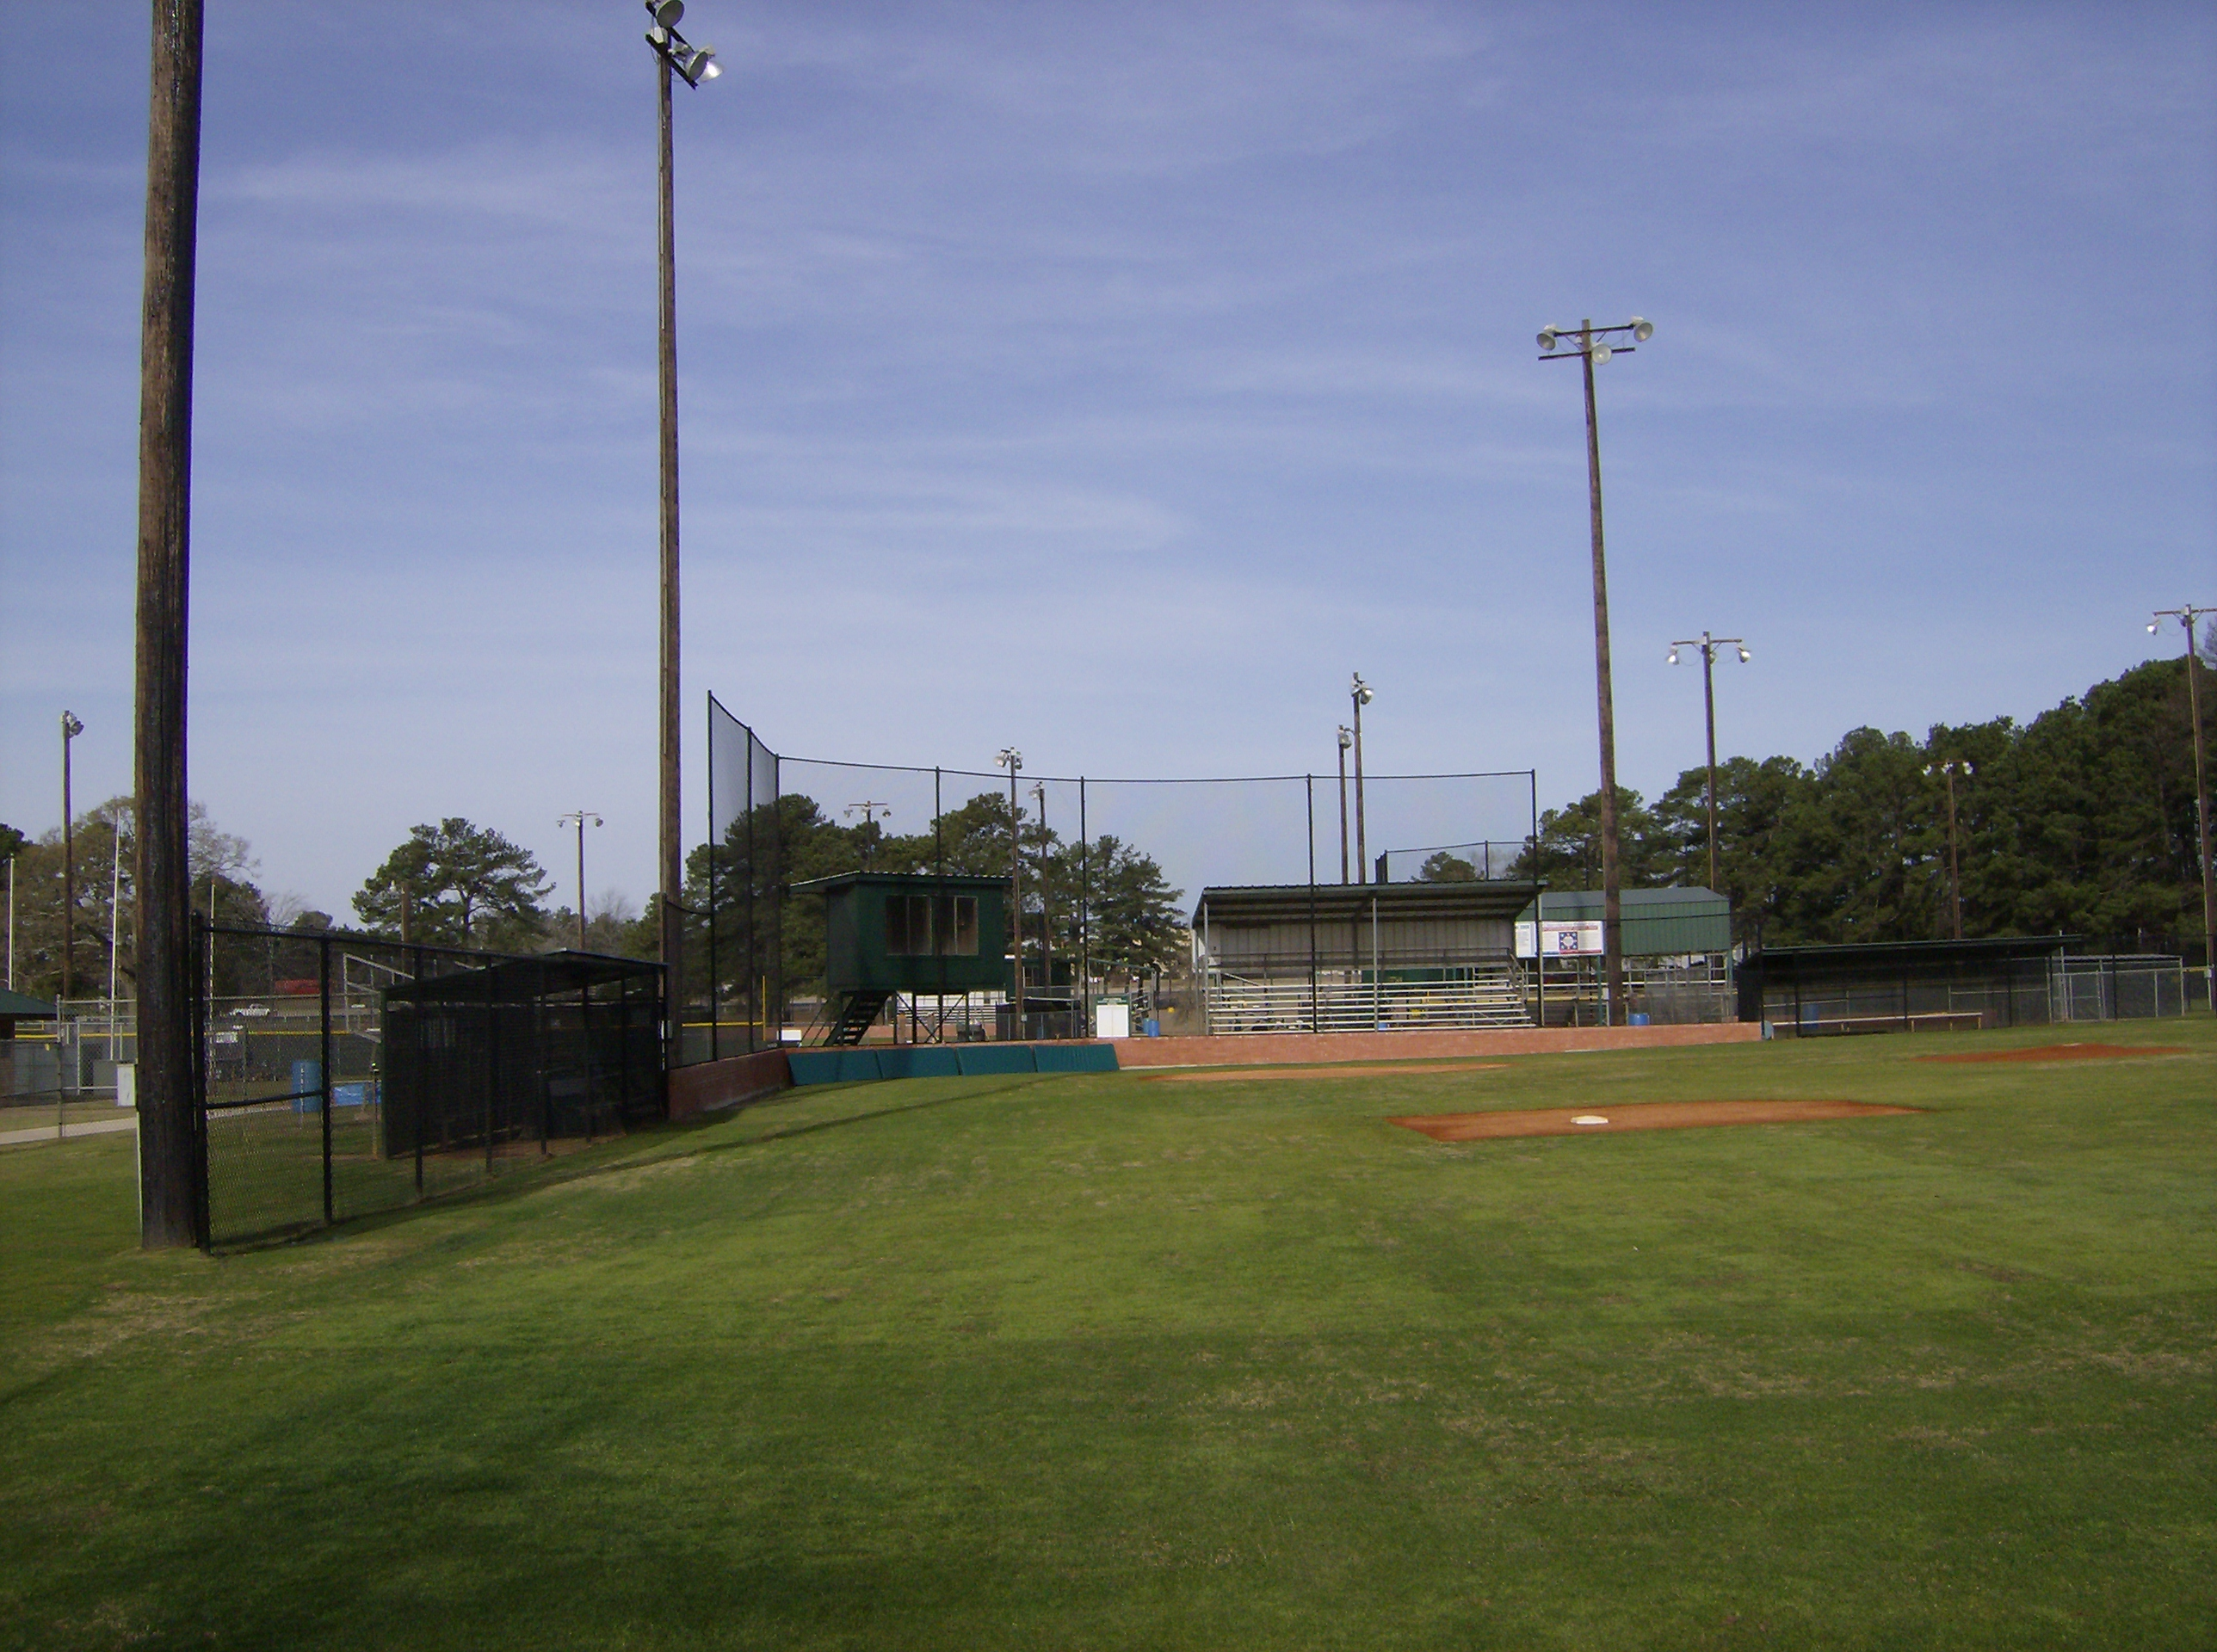 Baseball Field Lights Poles are 80' class 2